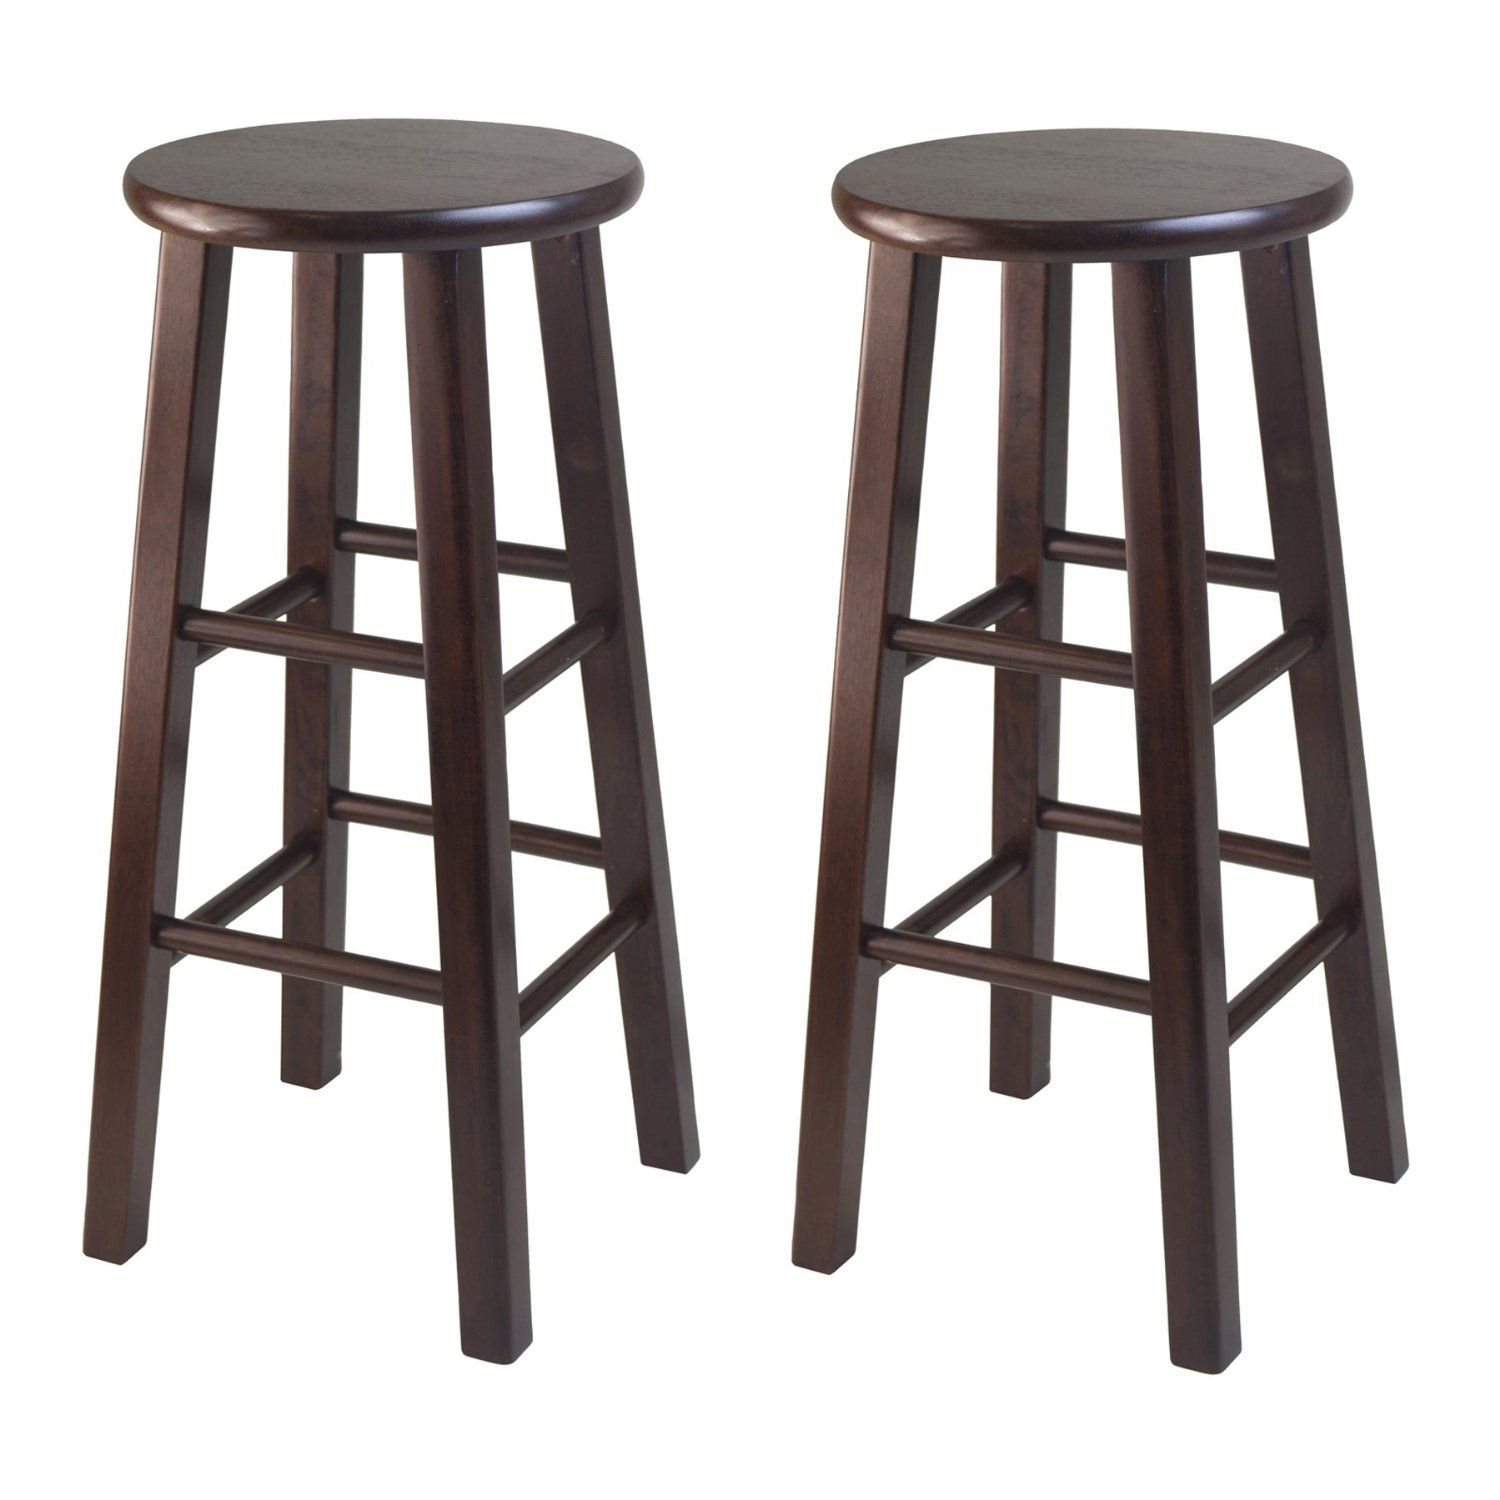 Furniture Traditional Dark Wooden Kitchen Bar Stool With Rounded Seat Extra Tall Bar Stools  sc 1 st  Pinterest & Furniture Traditional Dark Wooden Kitchen Bar Stool With Rounded ... islam-shia.org